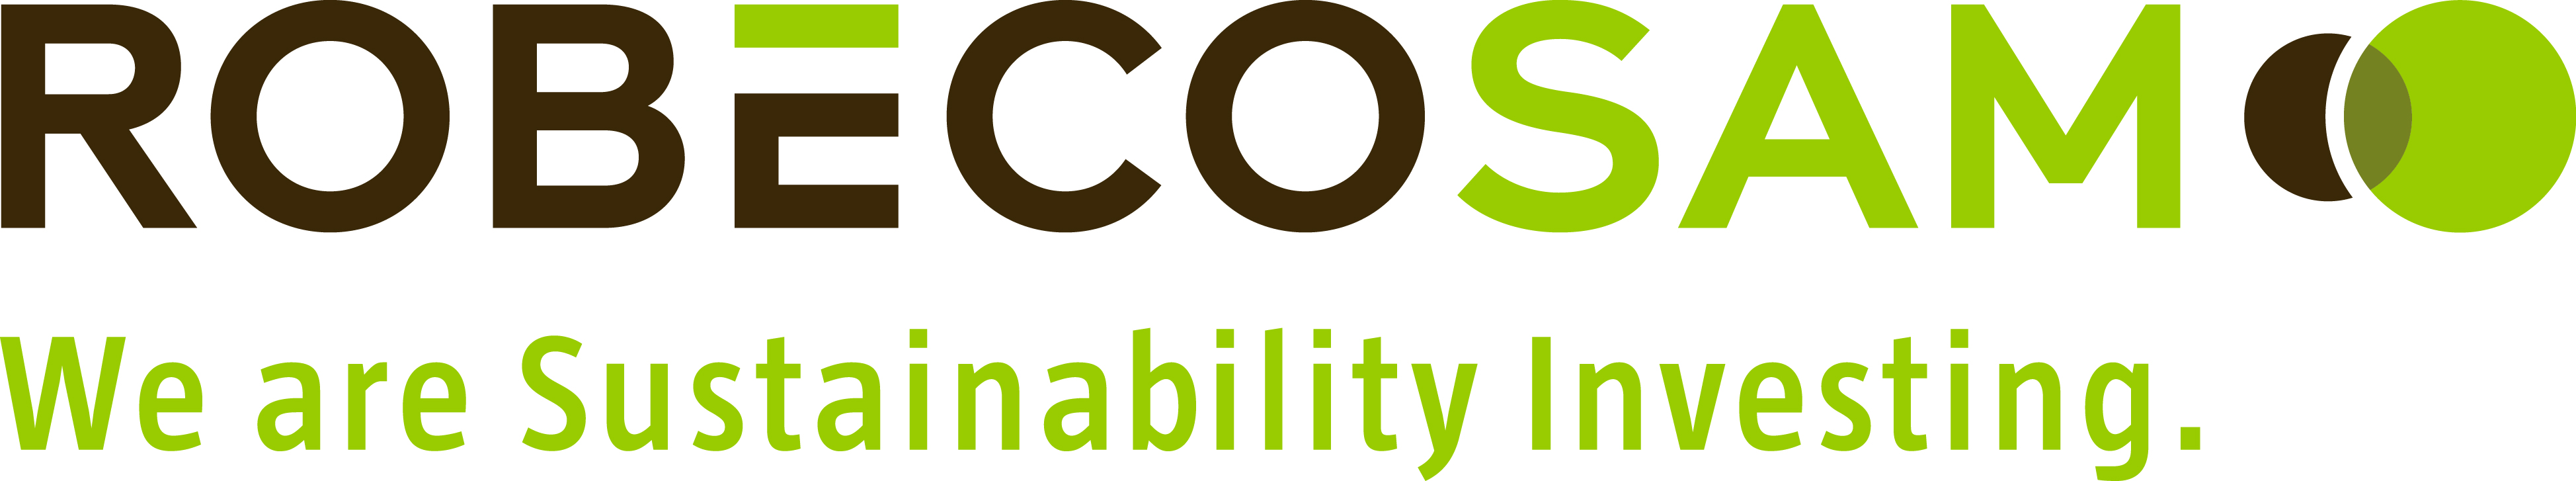 "RobecoSAM publishes The Sustainability Yearbook 2019 under ""SAM"" branding"